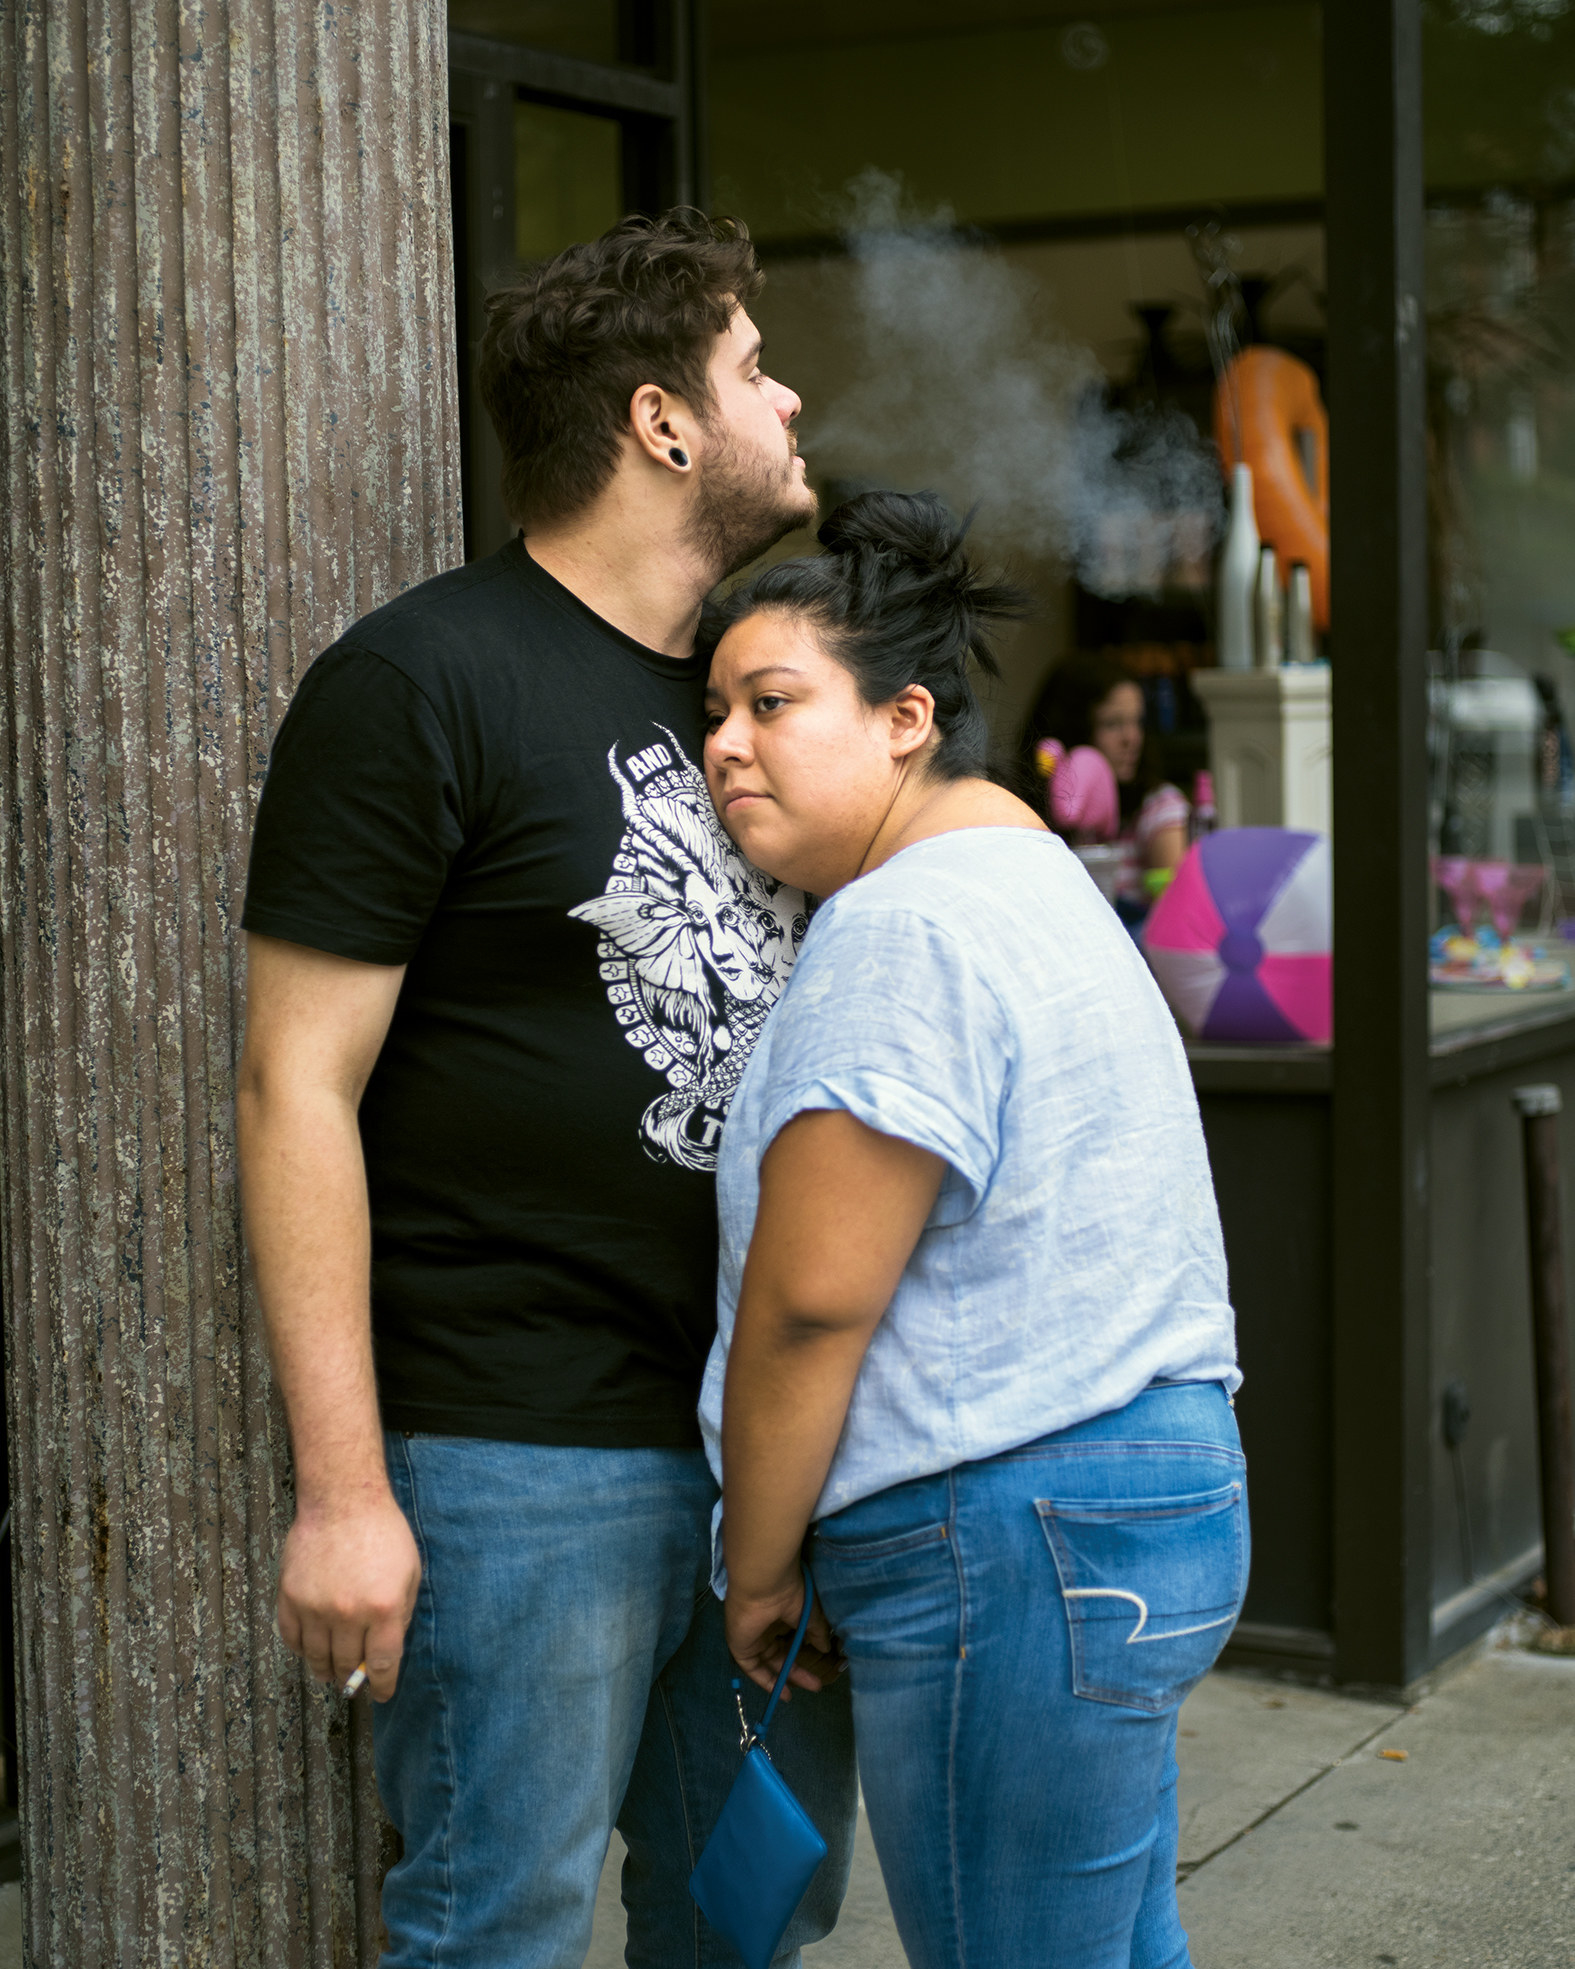 Two people embrace while smoking cigarettes